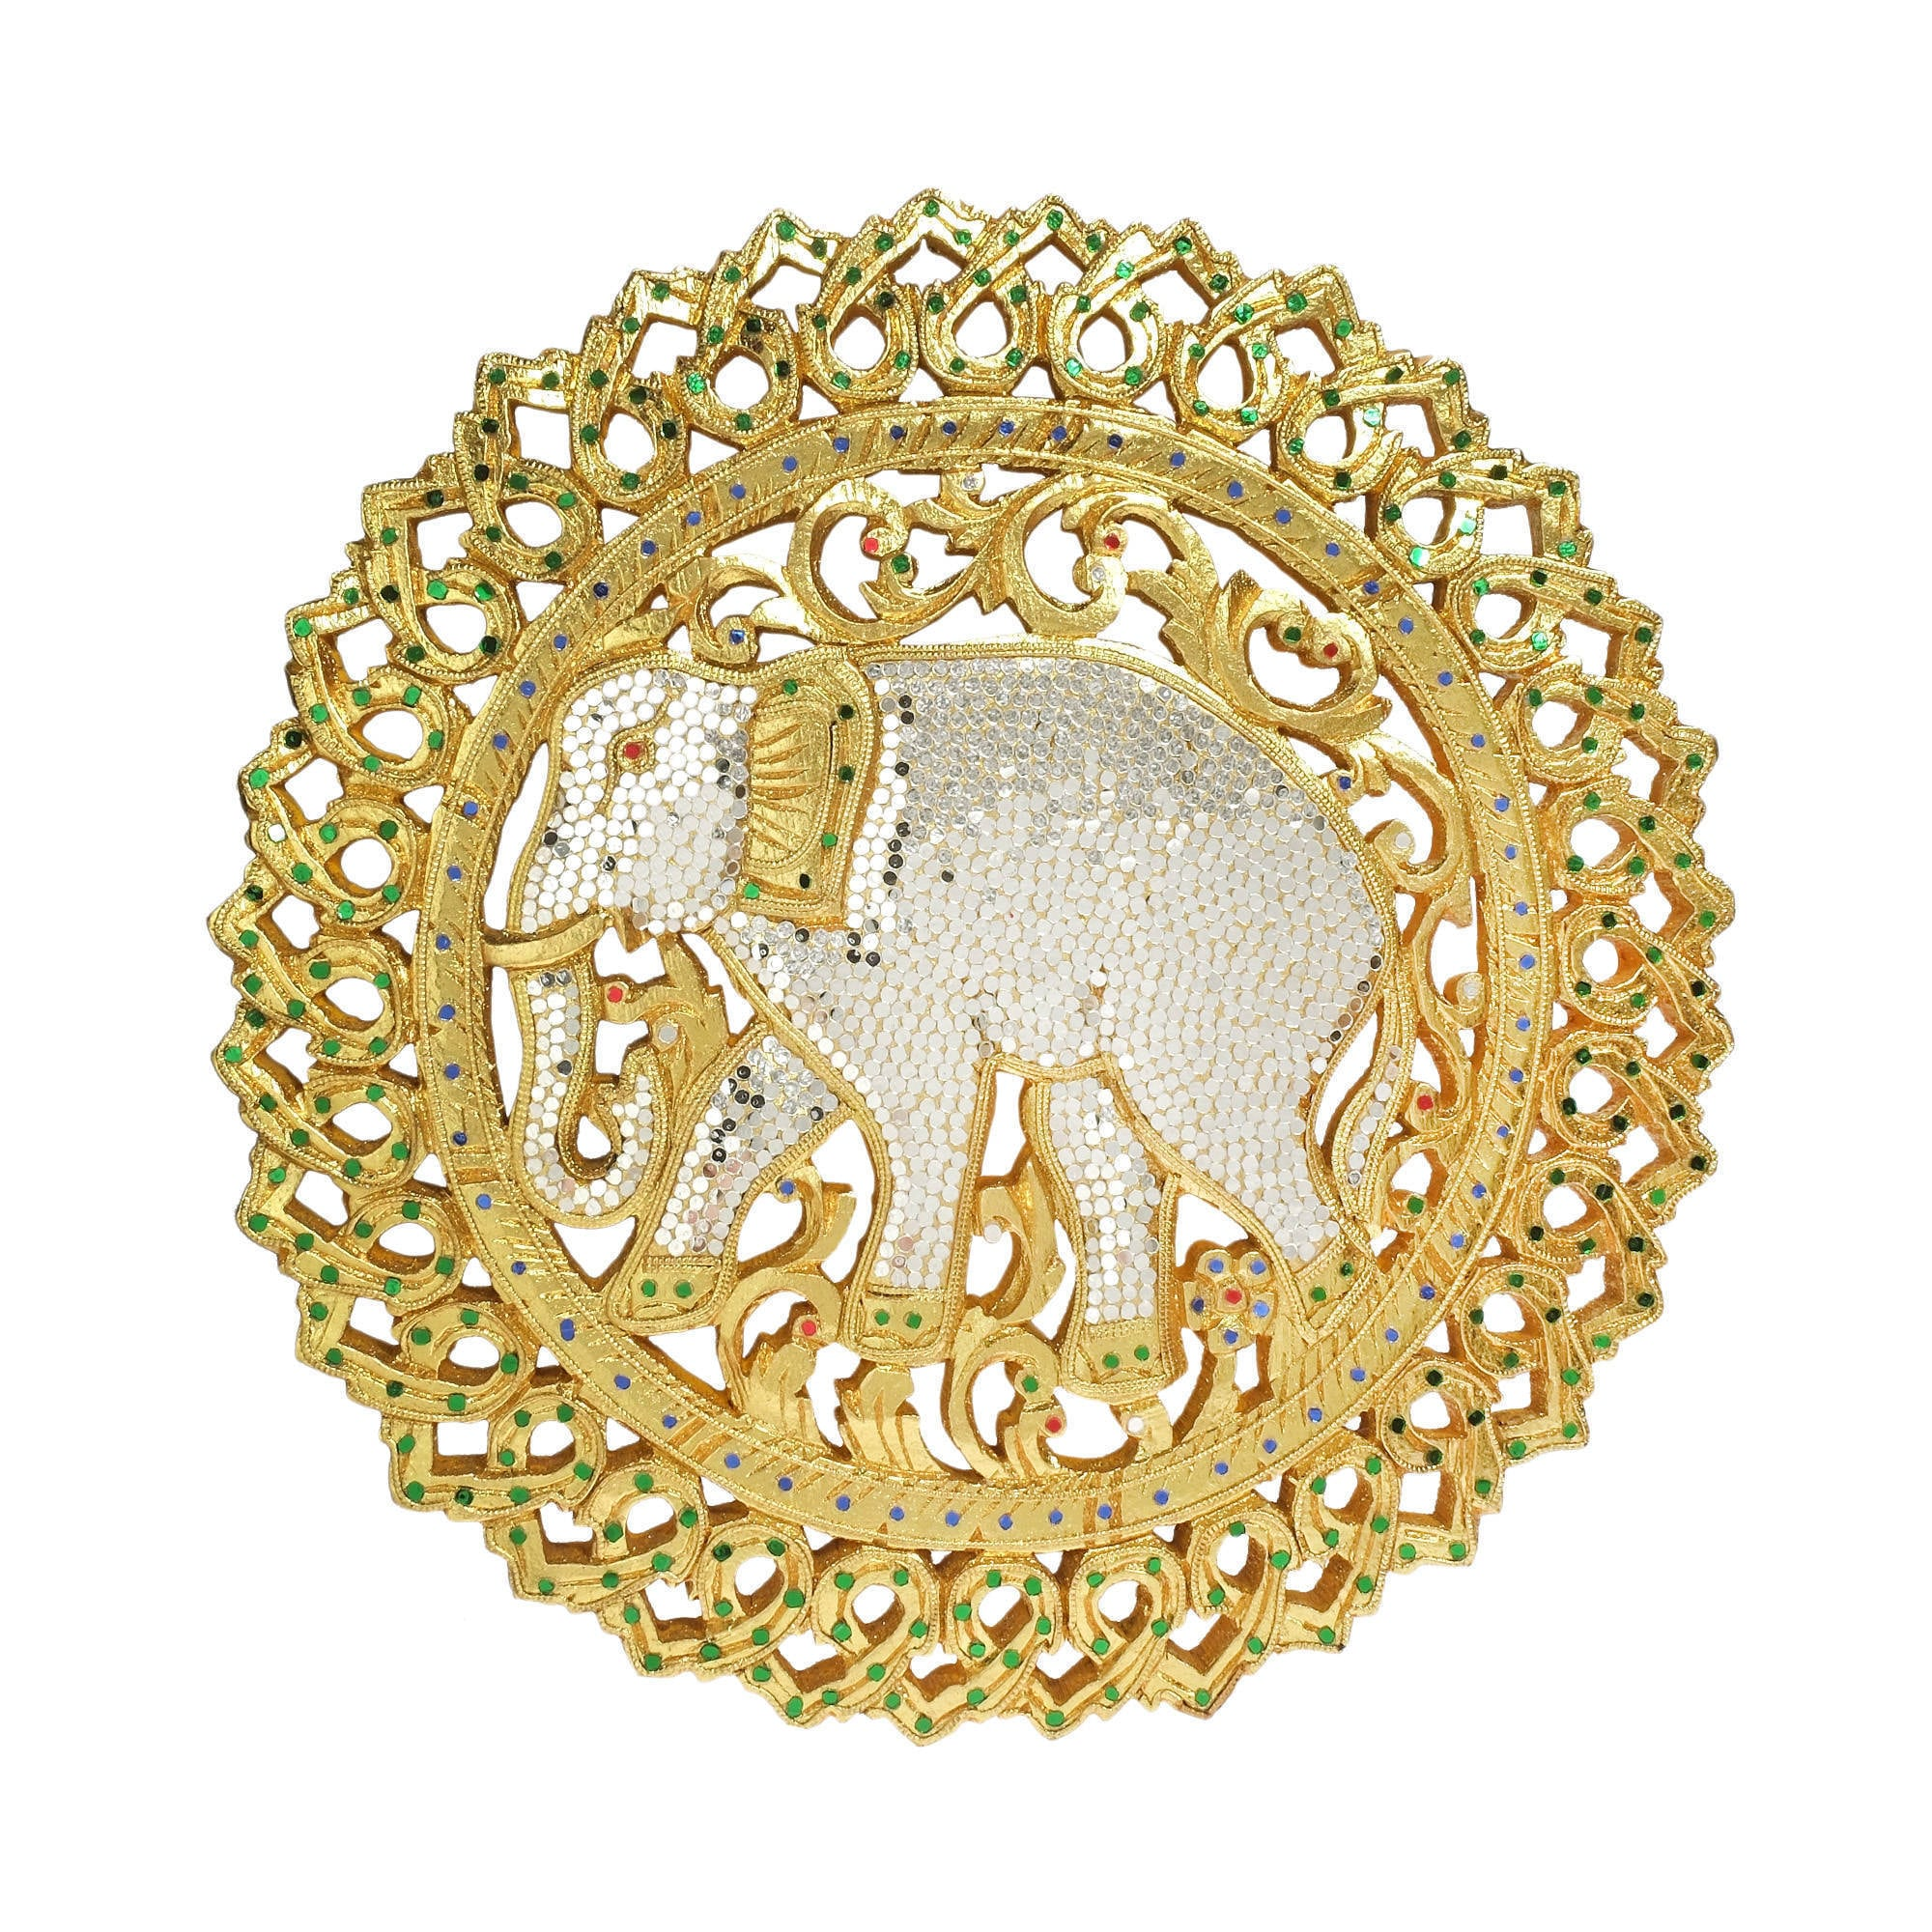 Shop Handmade The Grand Elephant Gilded 24k Gold Carved Wood Wall ...